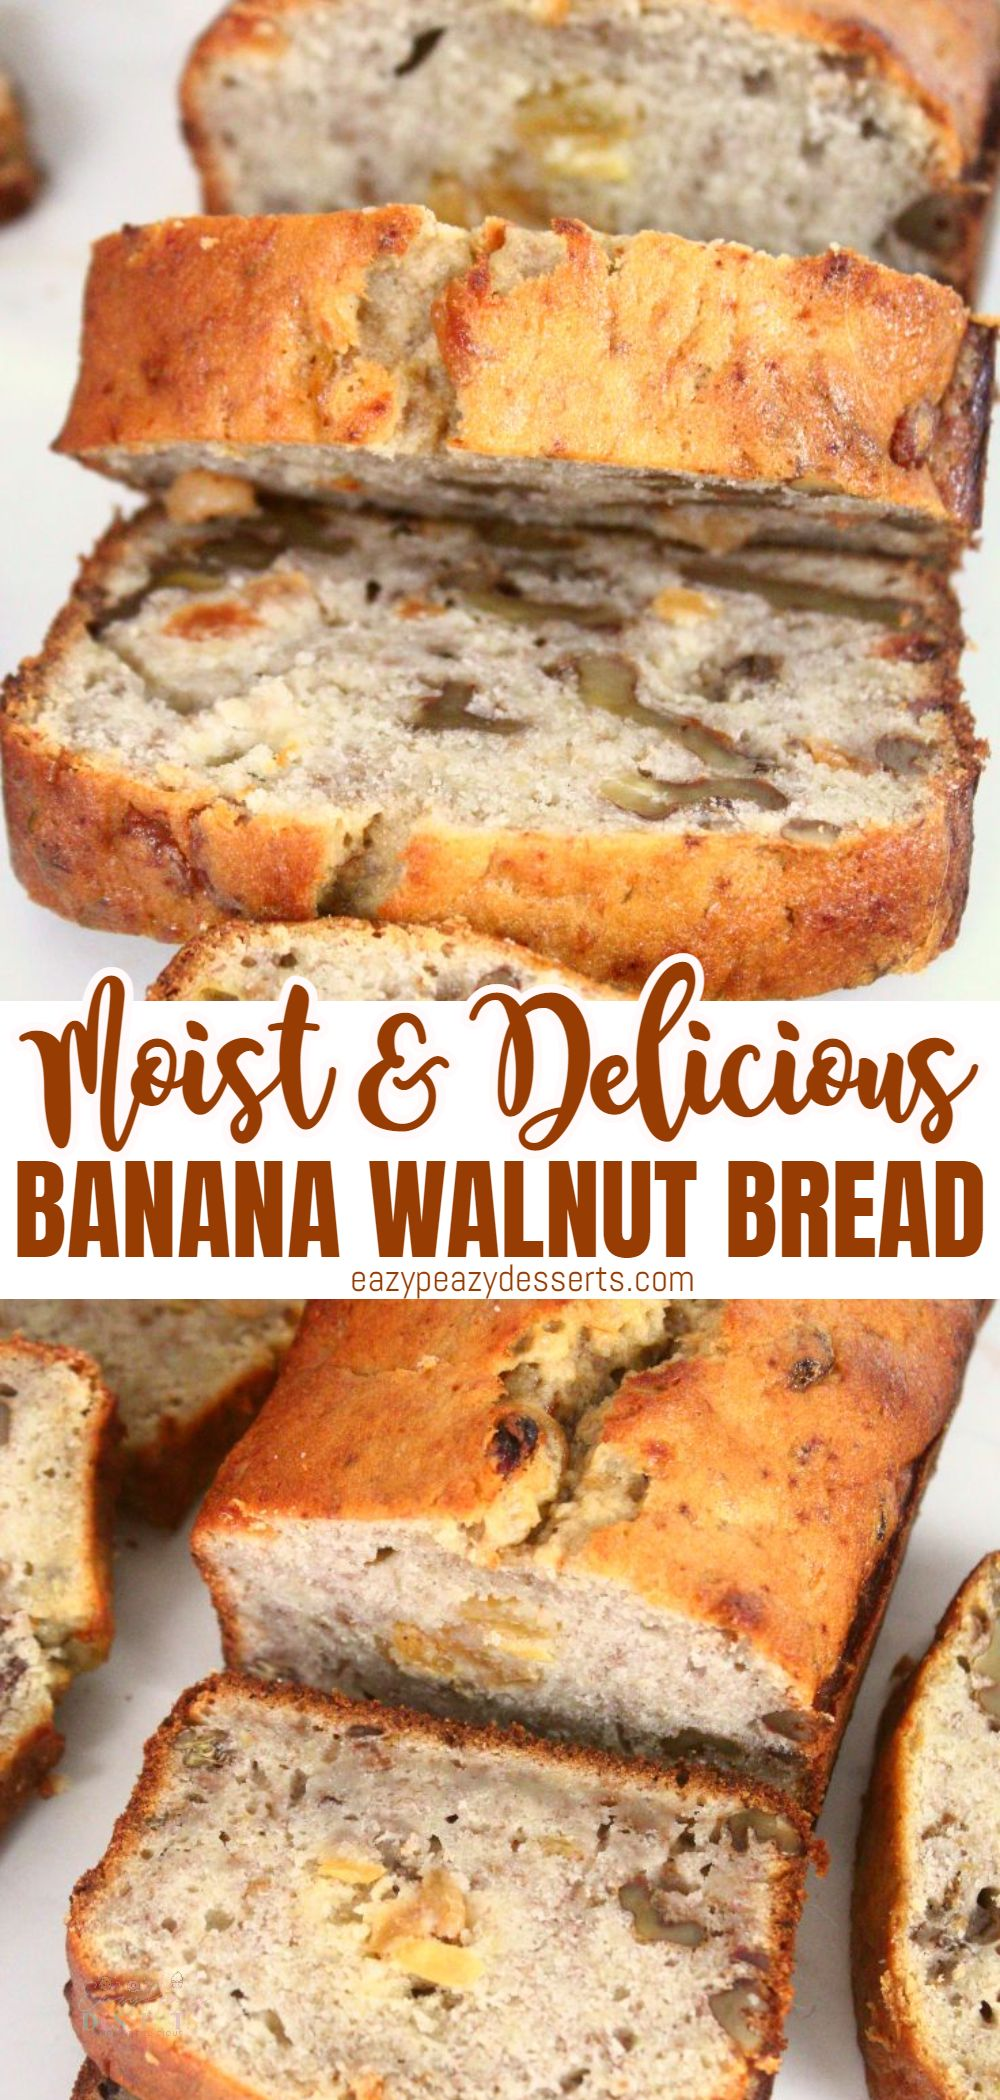 Banana bread is just so delicious and moist, it's great as a breakfast bread. Today I'm going to show you a super-easy banana and walnut bread that even beginners can make. You don't even need a mixer to make it. via @eazypeazydesserts